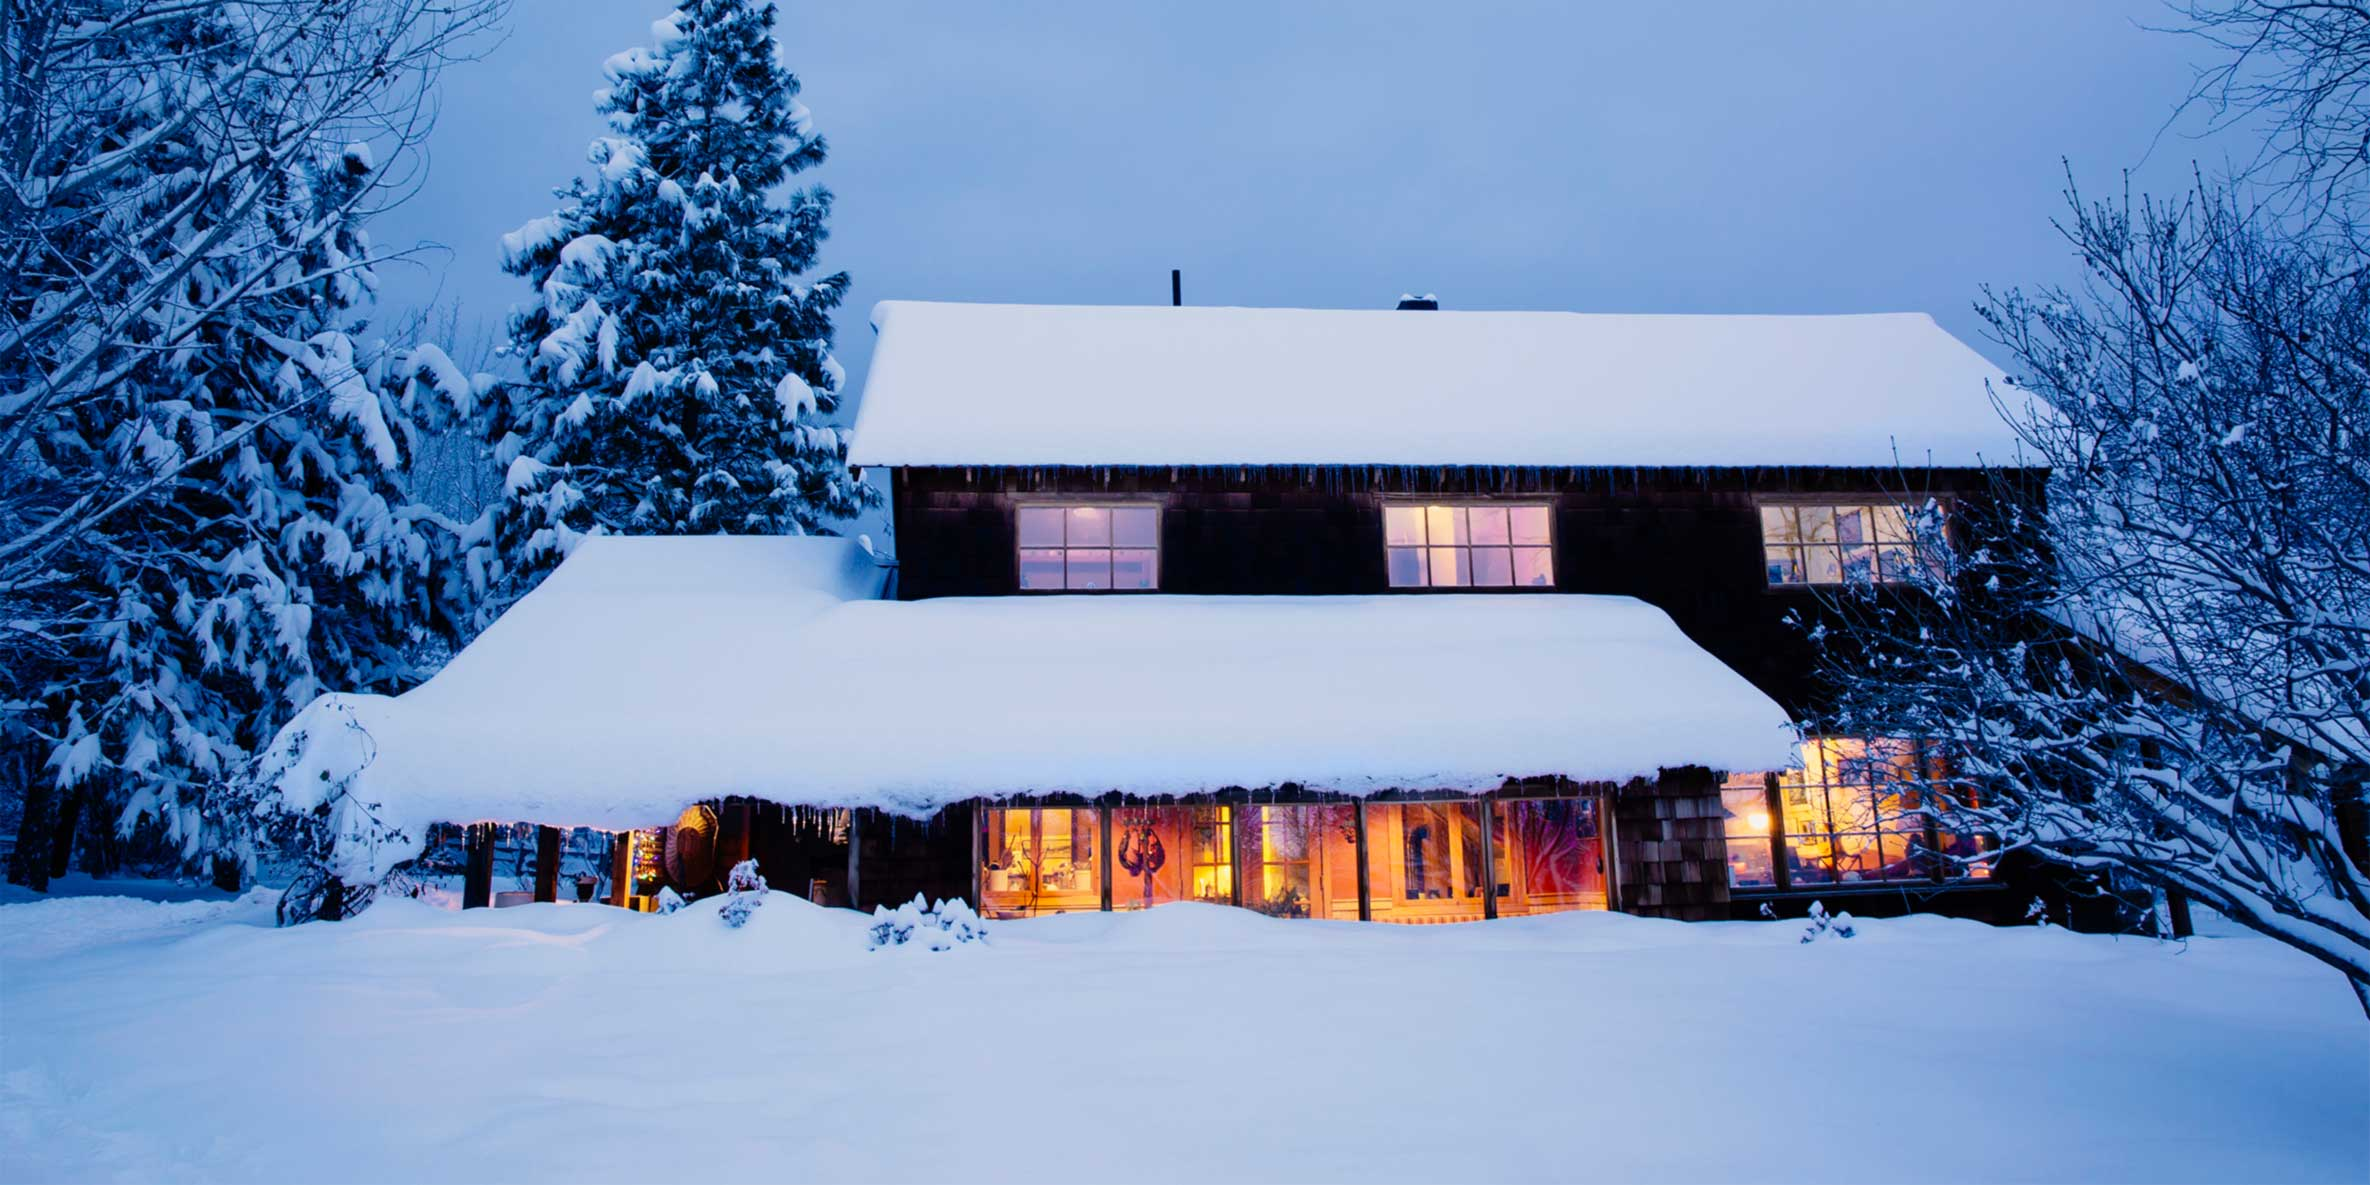 How to Properly Prepare Your Home for Winter Weather